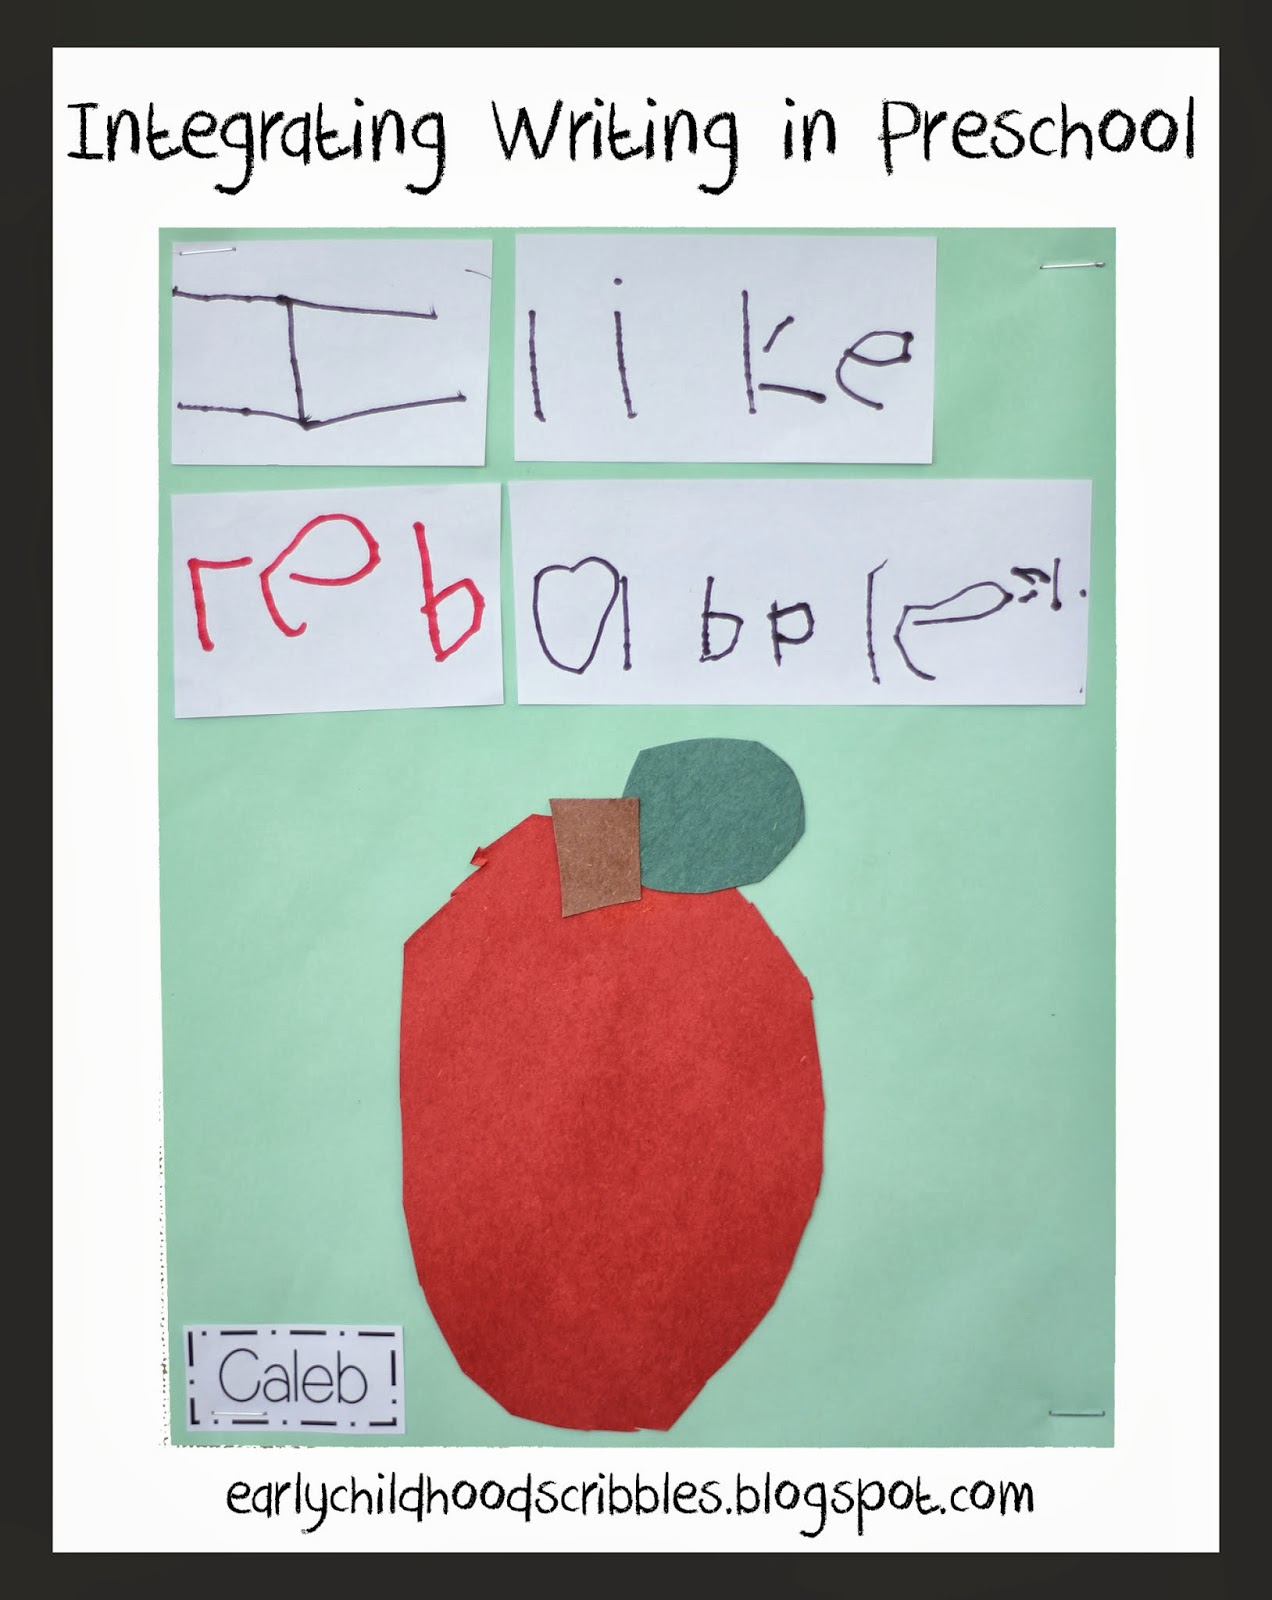 Early Childhood Scribbles Integrating Writing In Preschool